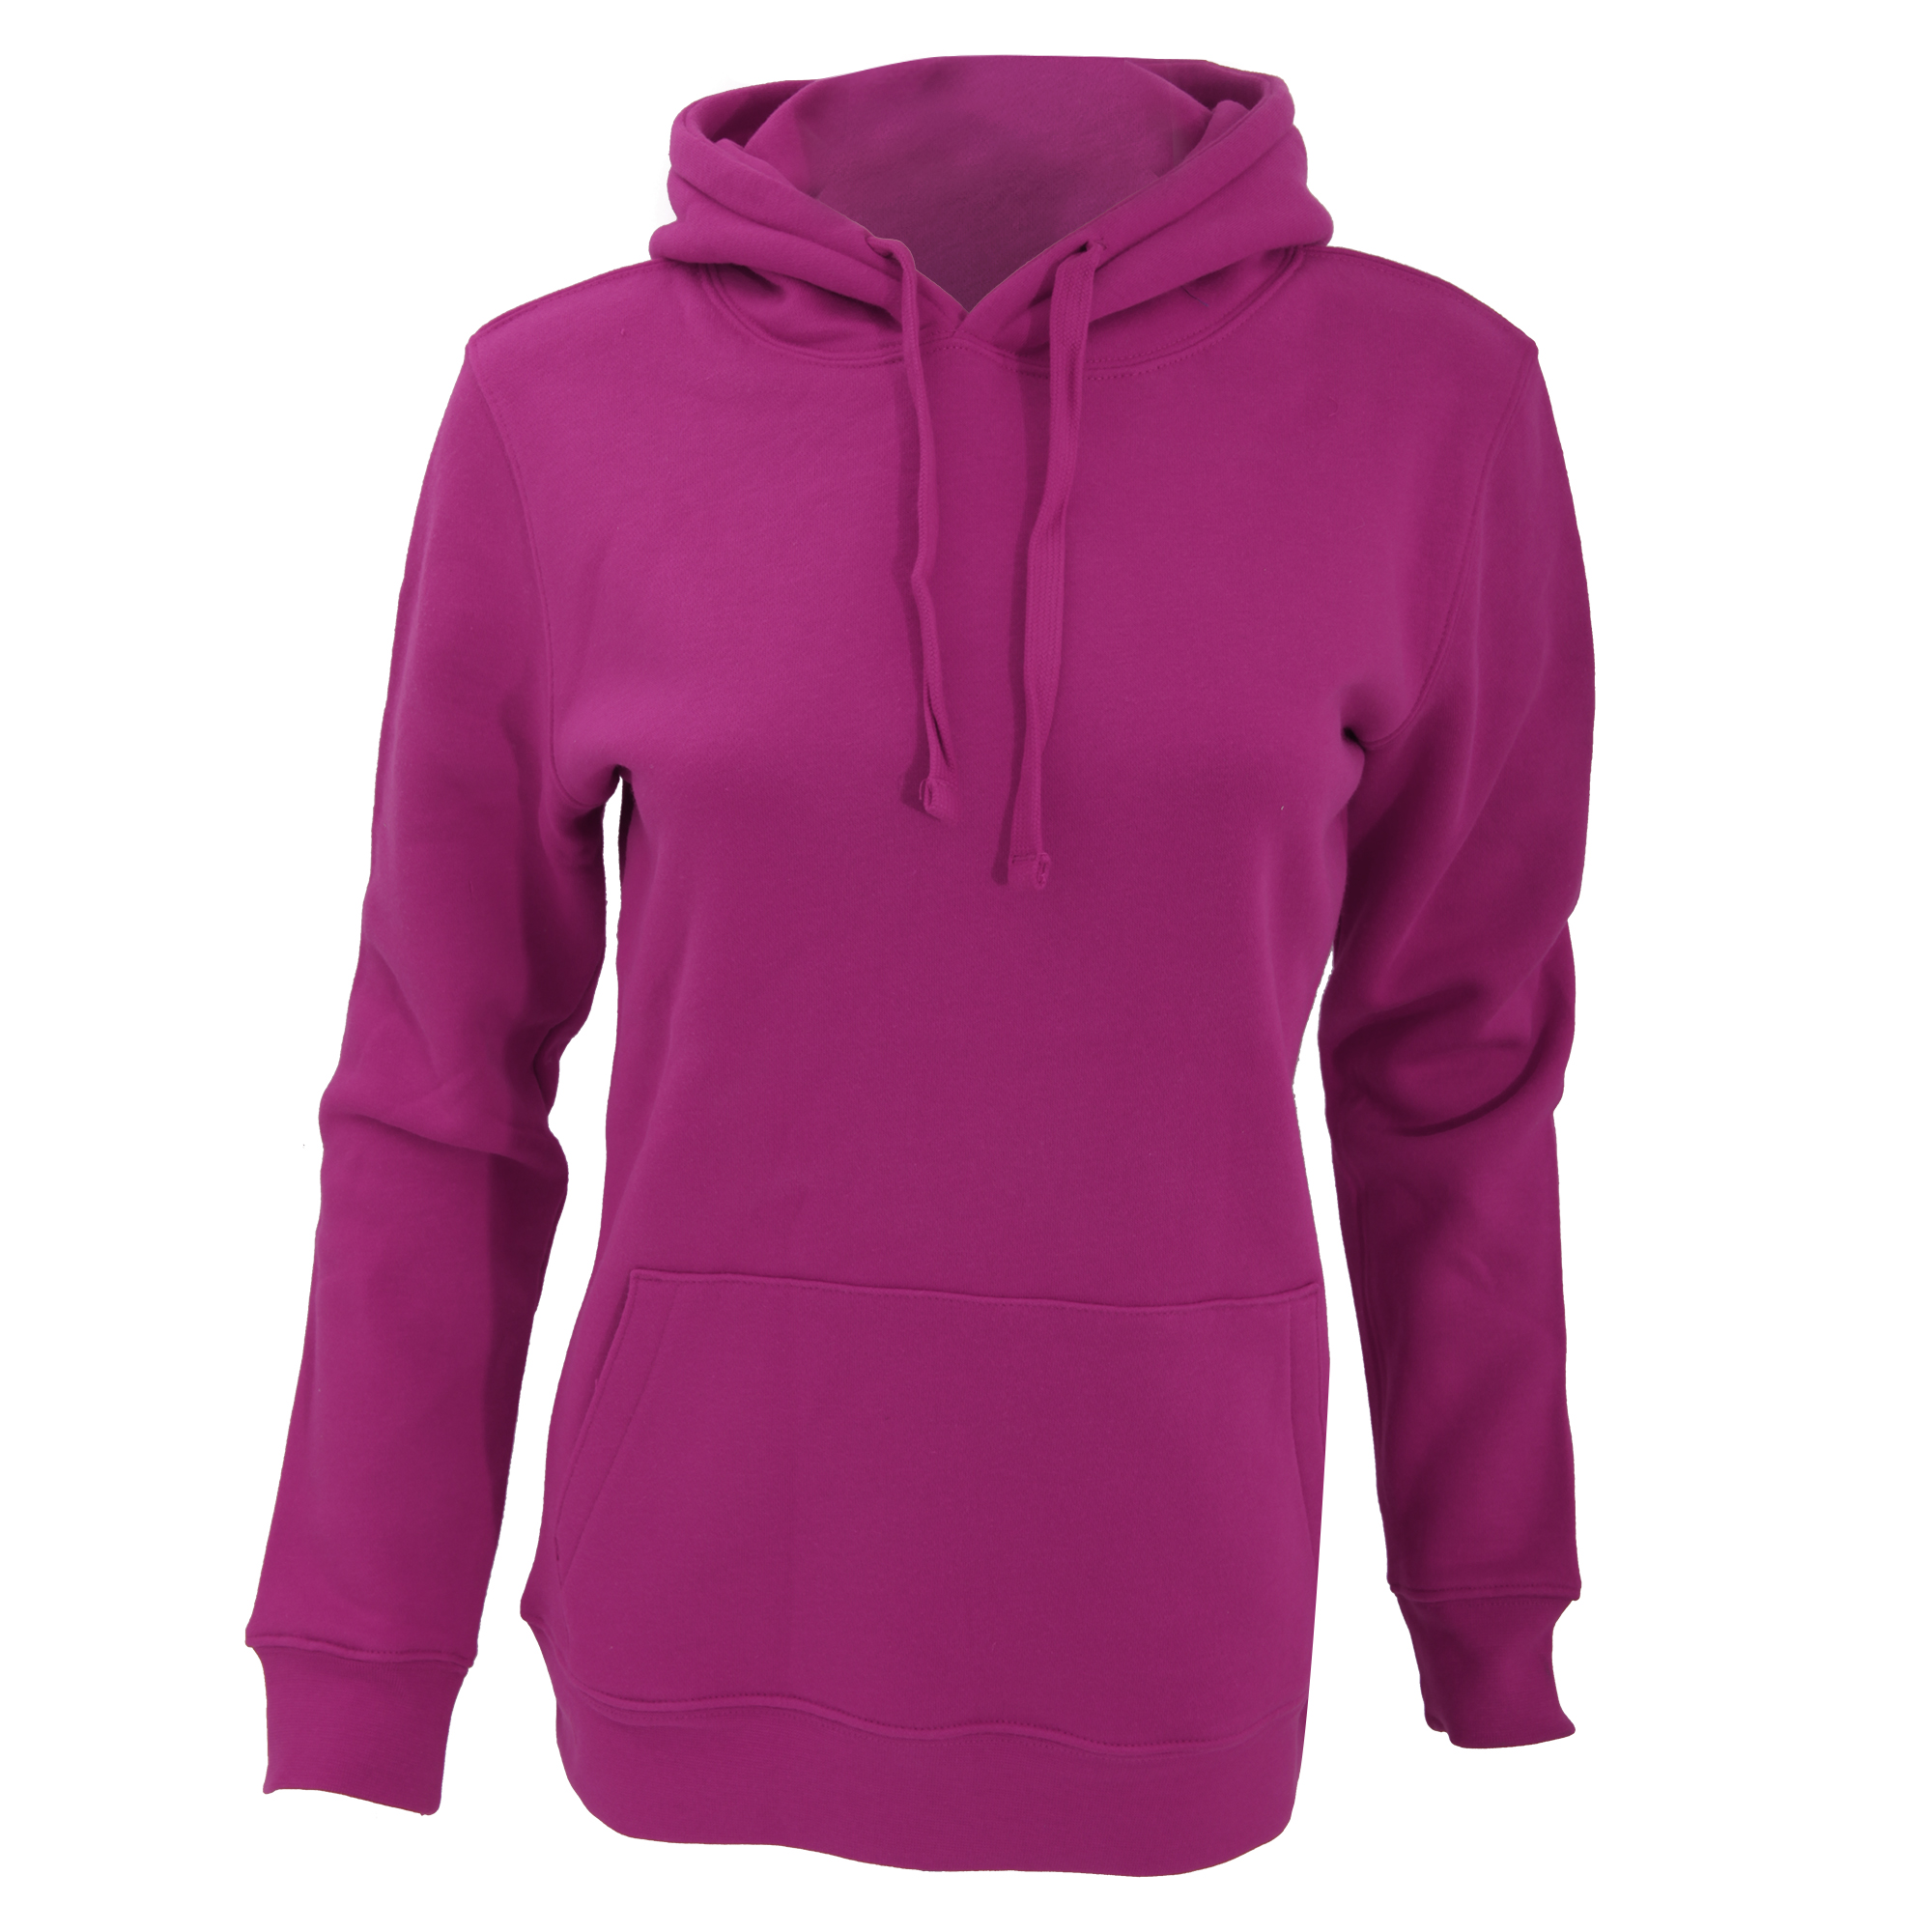 Russell Womens Premium Authentic Hoodie 3-Layer Fabric